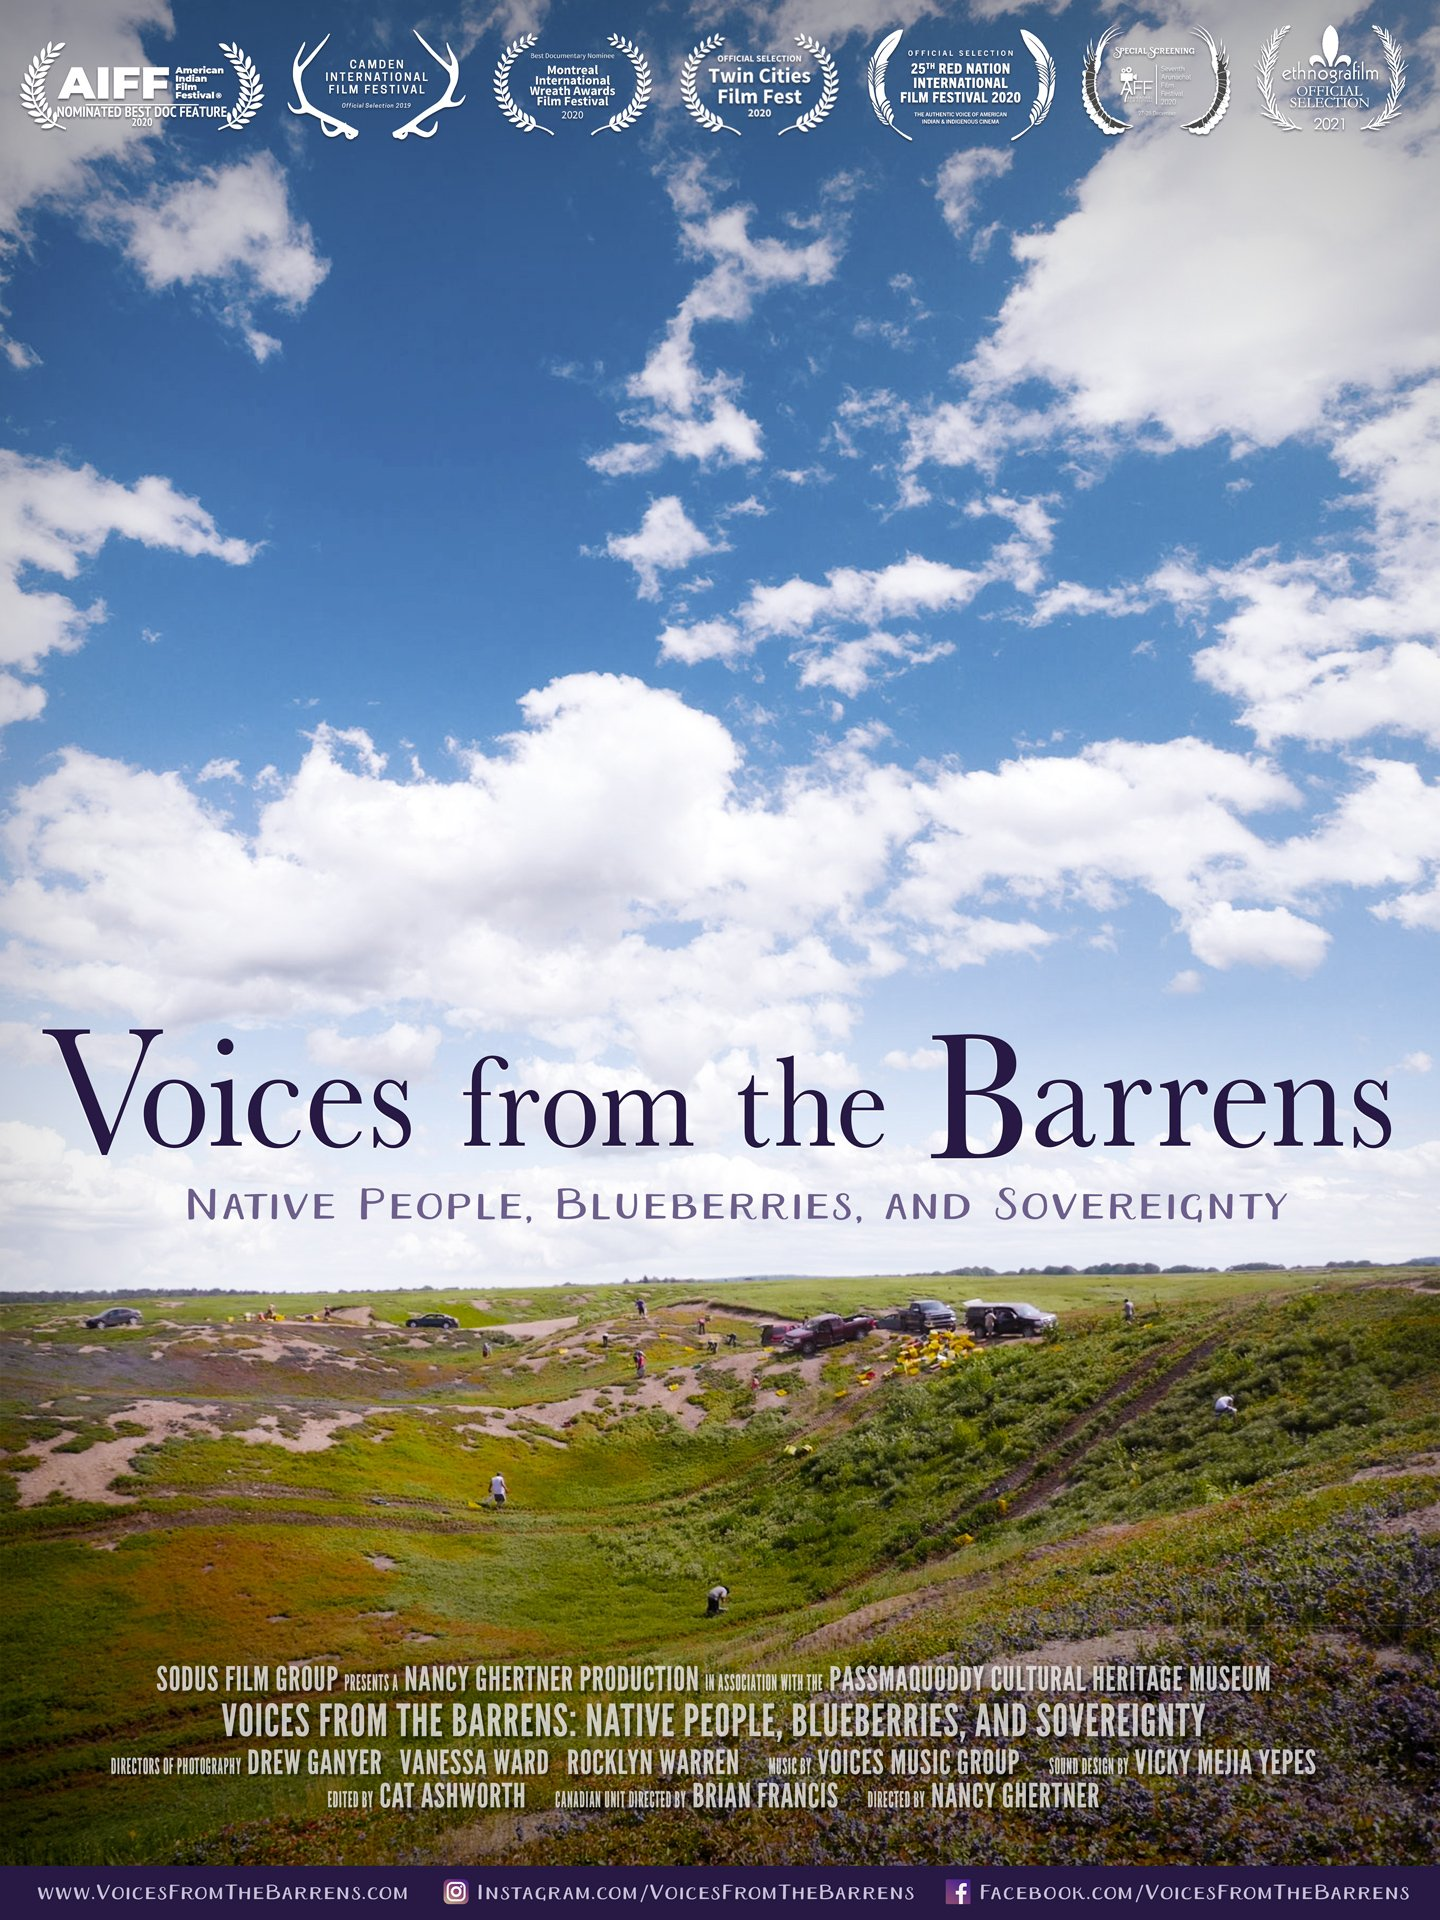 Voices from the Barrens